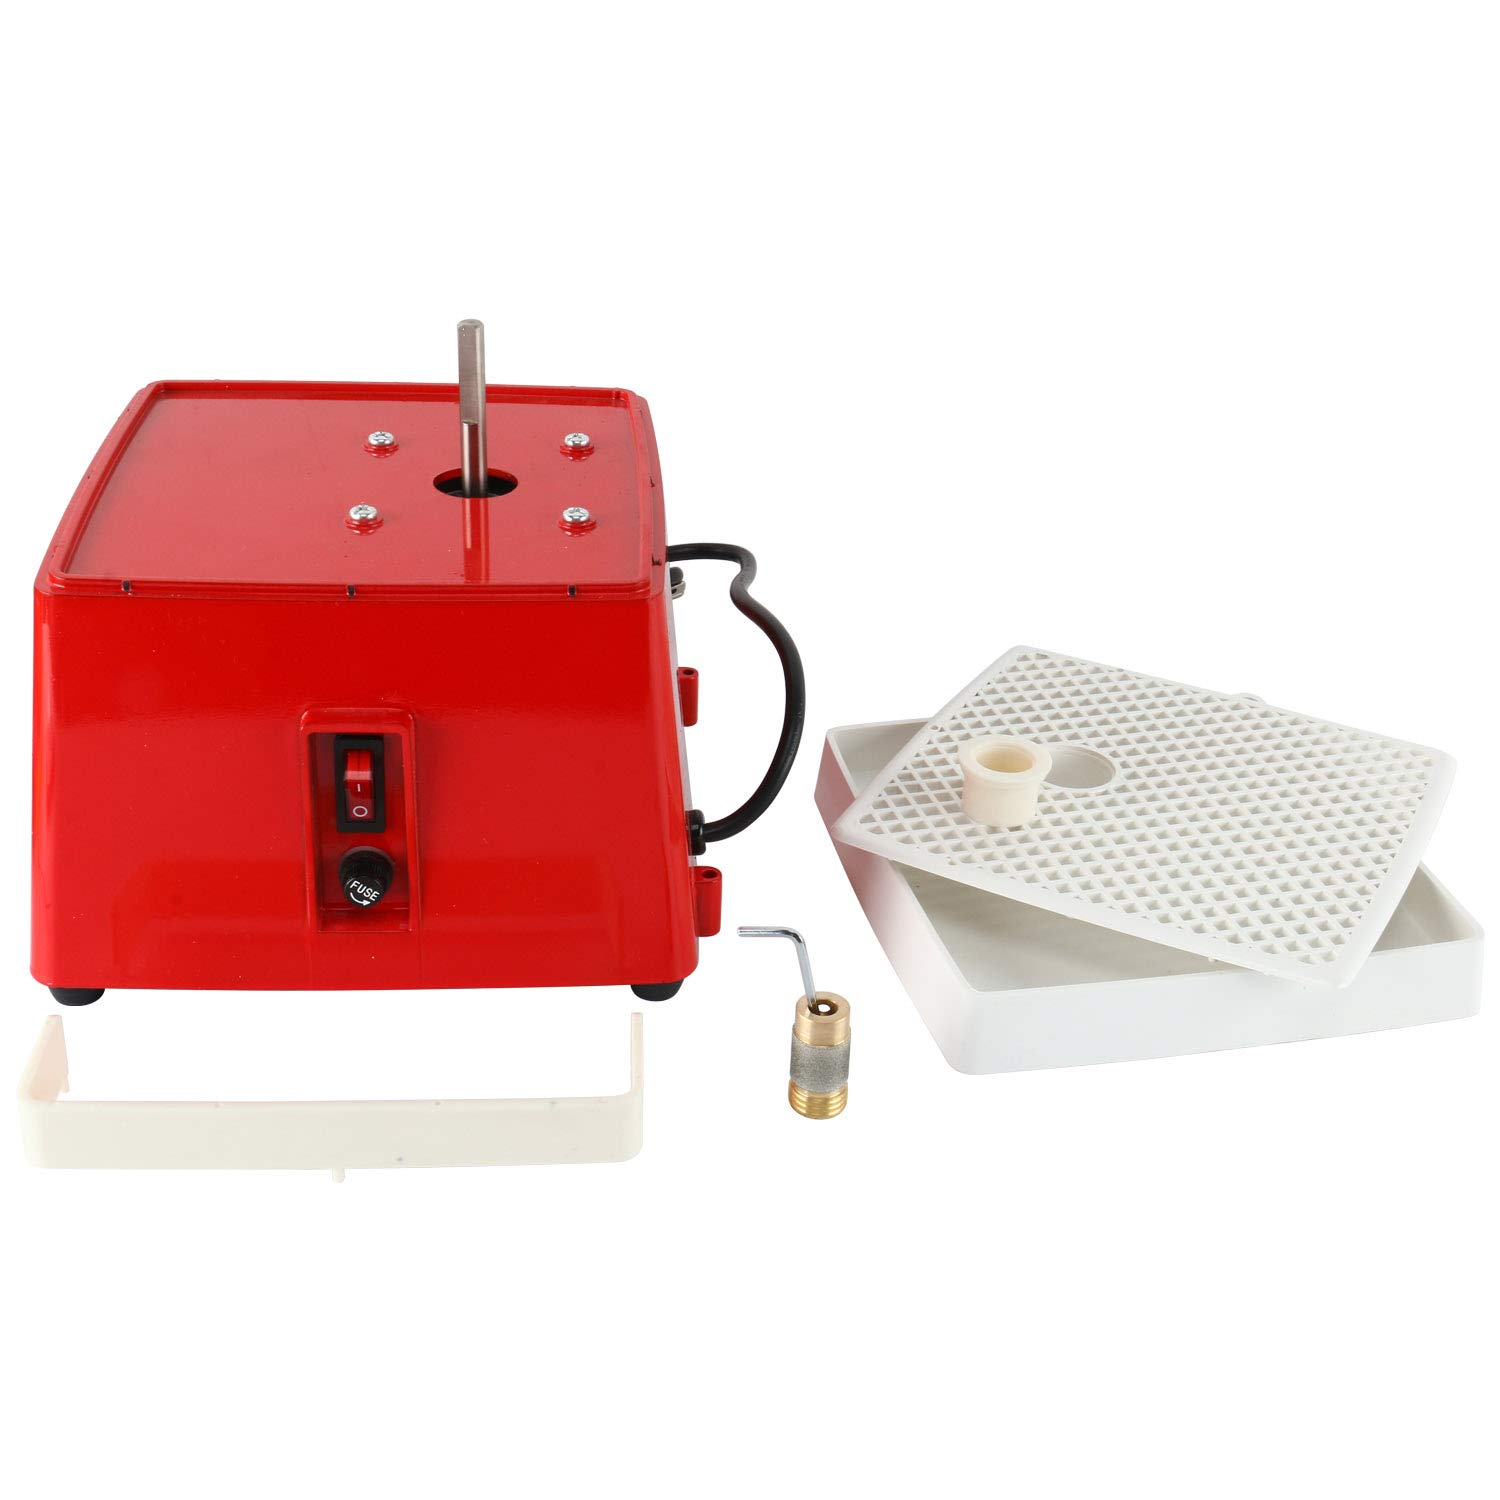 110V, 0.1A 65W Power Stained Grinder,Industrial Mini Portable Stained Grinder Diamond Glass Art Grinding Tool with Diamond Grinder Bit